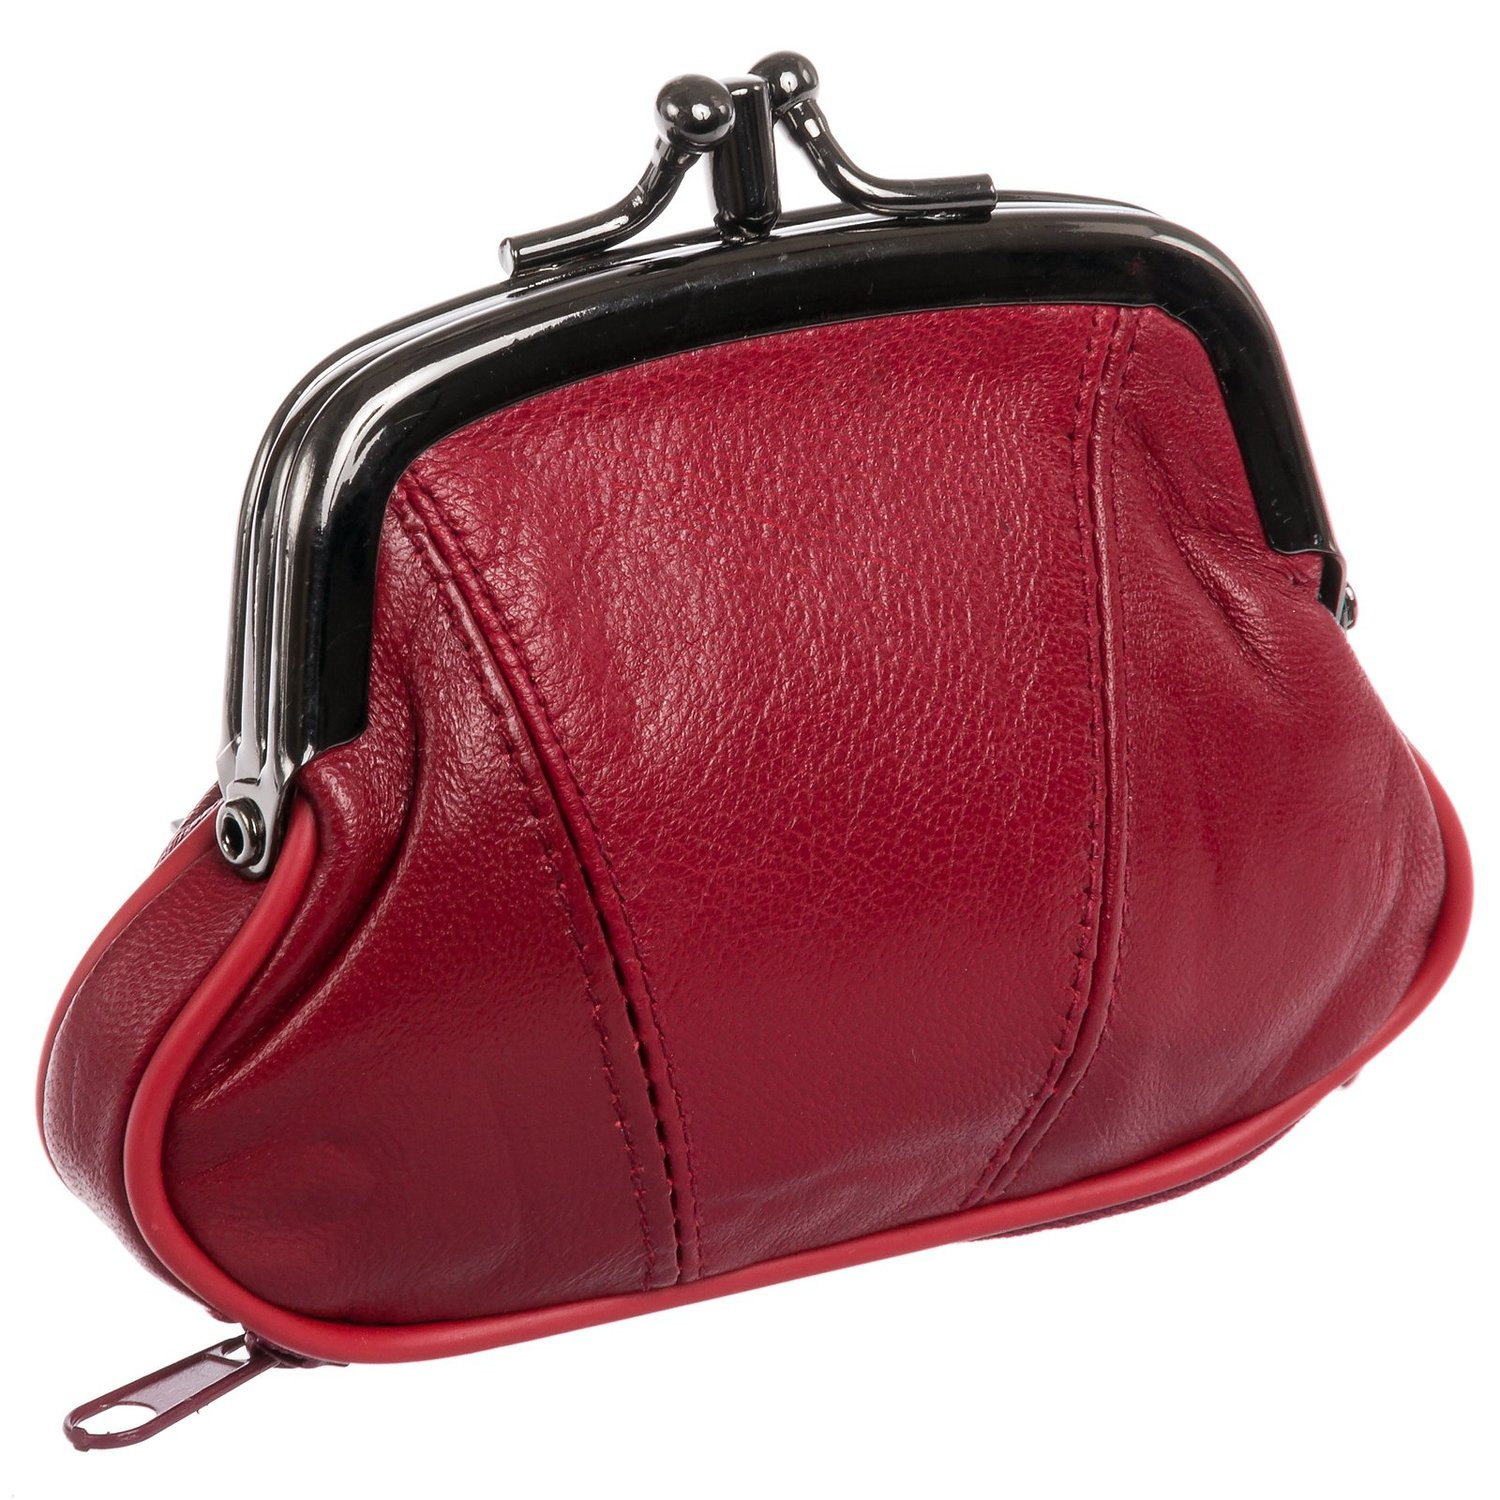 Genuine Leather Change Purse - Black (CA-K-03A-TAN) photo